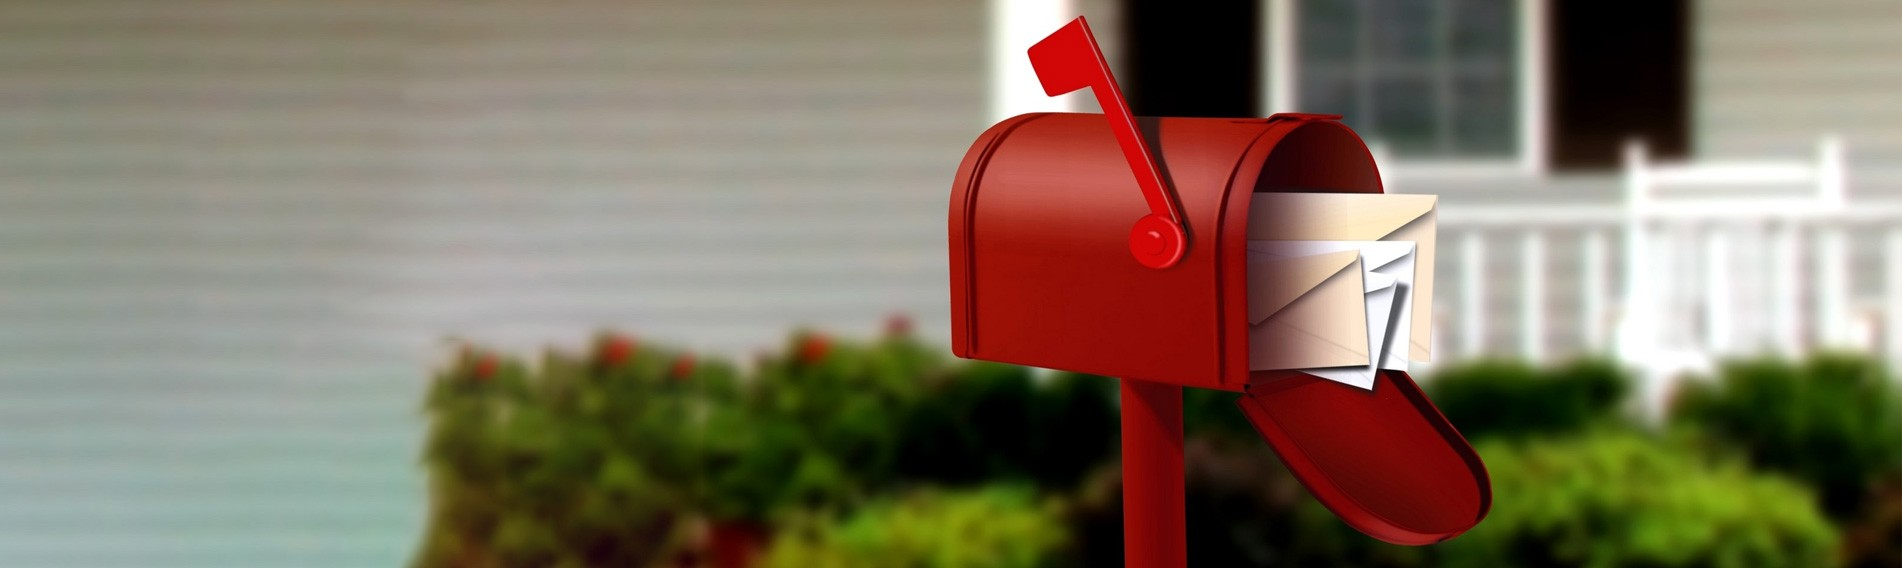 Distribution & Direct Mail Services